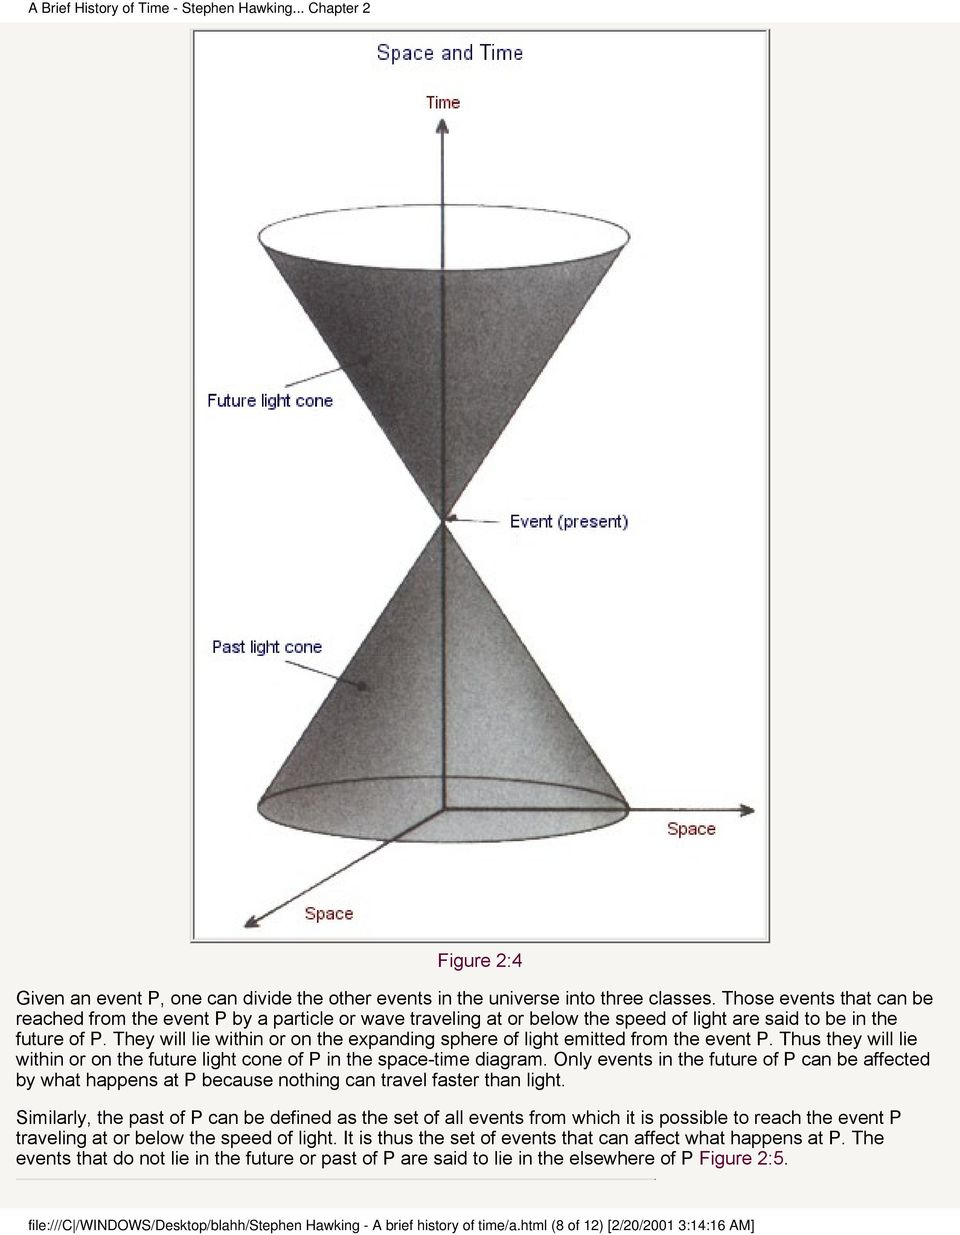 They will lie within or on the expanding sphere of light emitted from the event P. Thus they will lie within or on the future light cone of P in the space-time diagram.